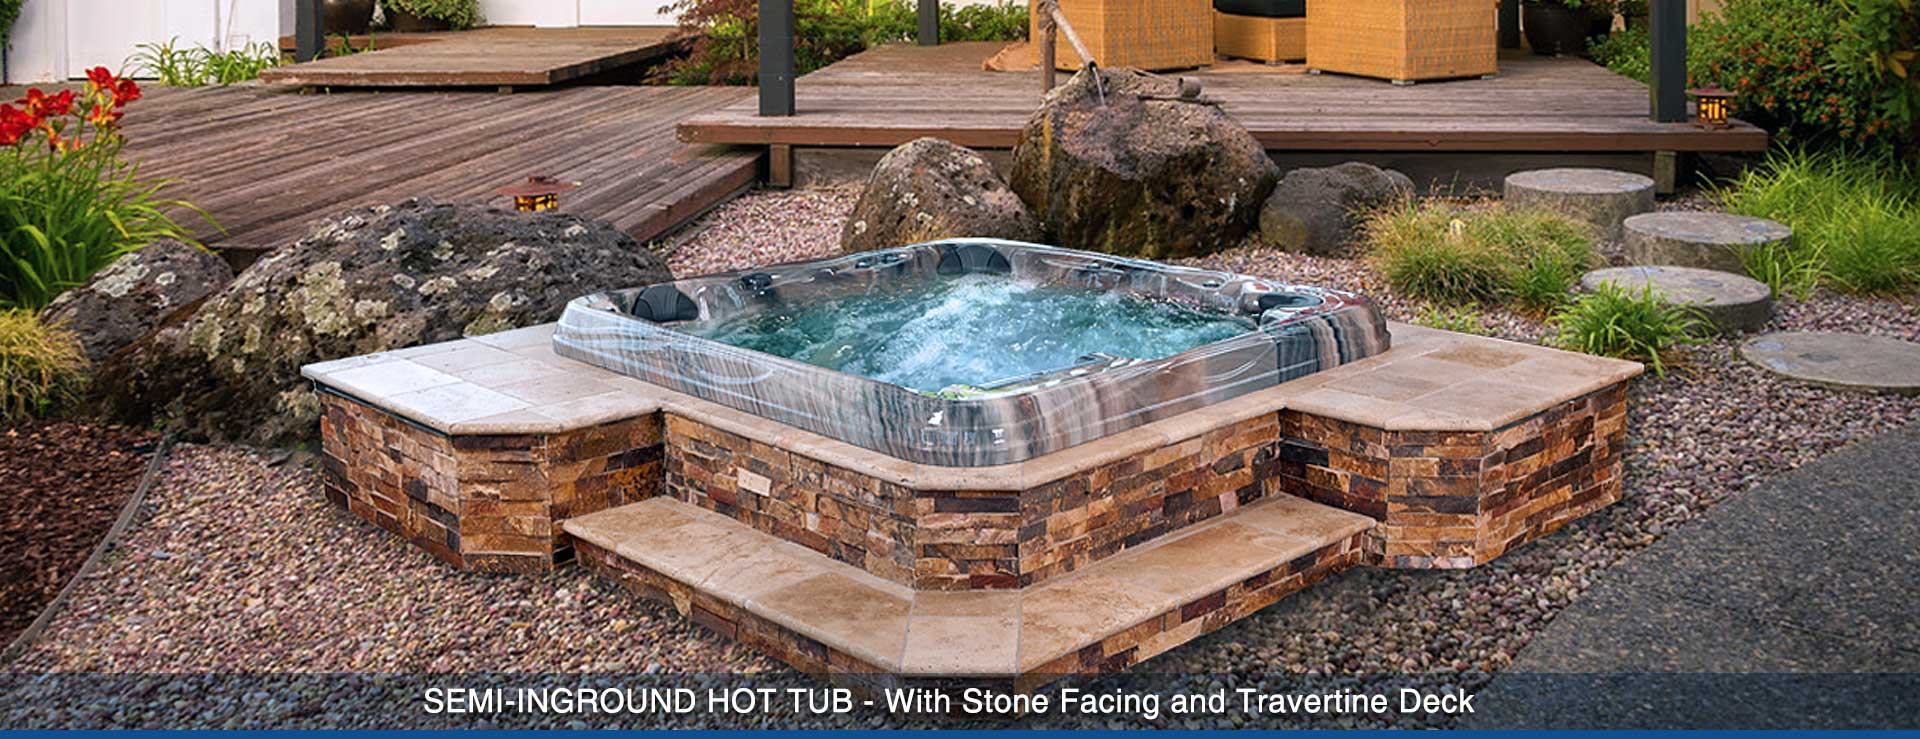 Creative spa designs premier inground spa portable hot tubs spa and swim - Jacuzzi semi enterre ...